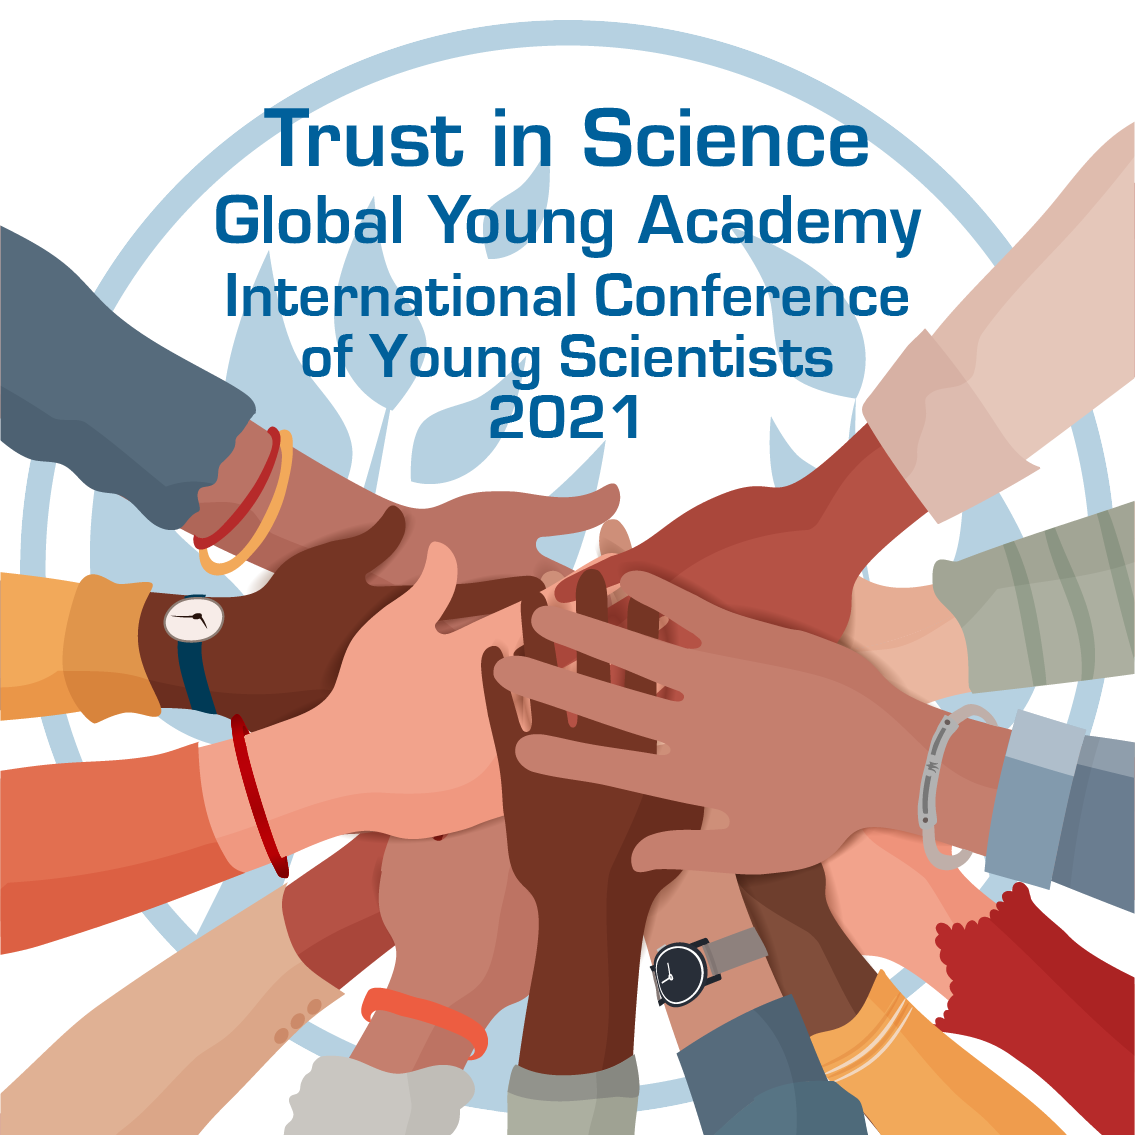 2021 International Conference of Young Scientists and GYA Annual General Meeting